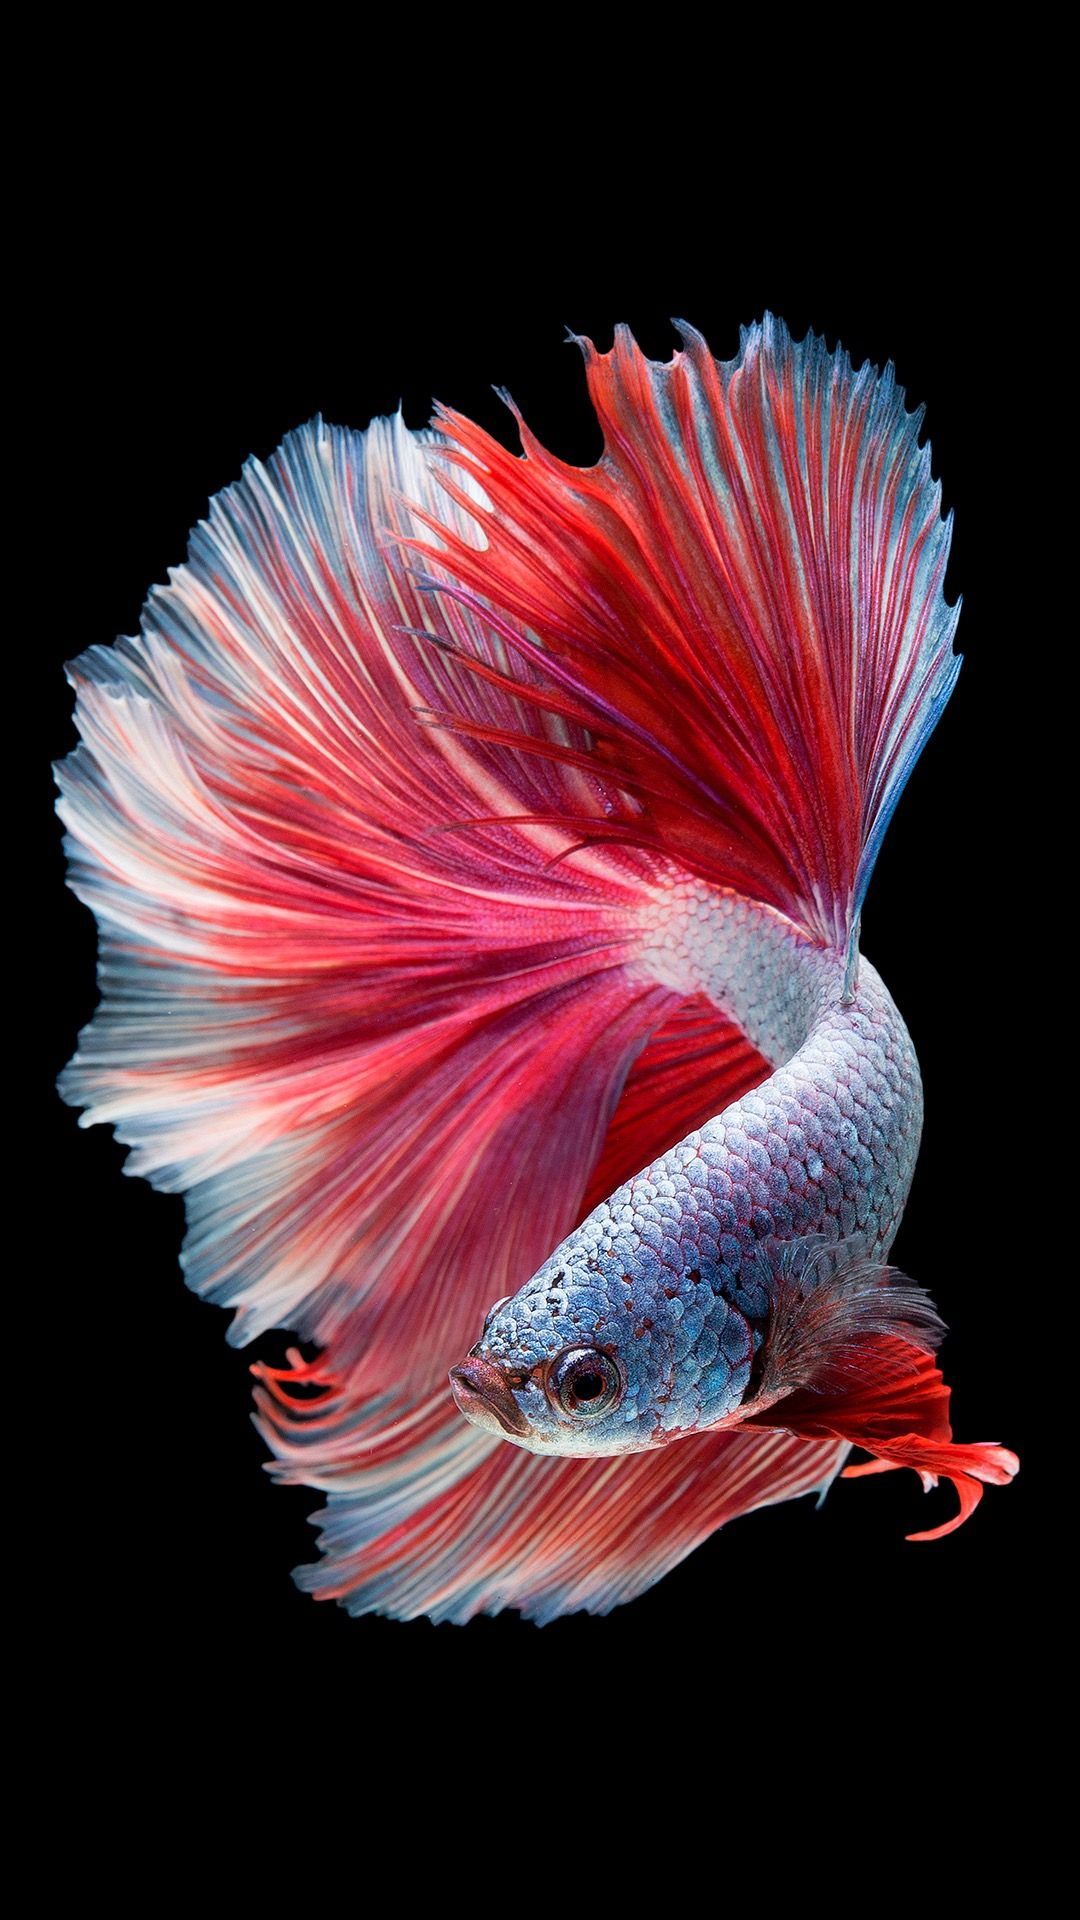 Black Bright Wallpaper Fish Wallpaper Betta Fish Types Pretty Fish